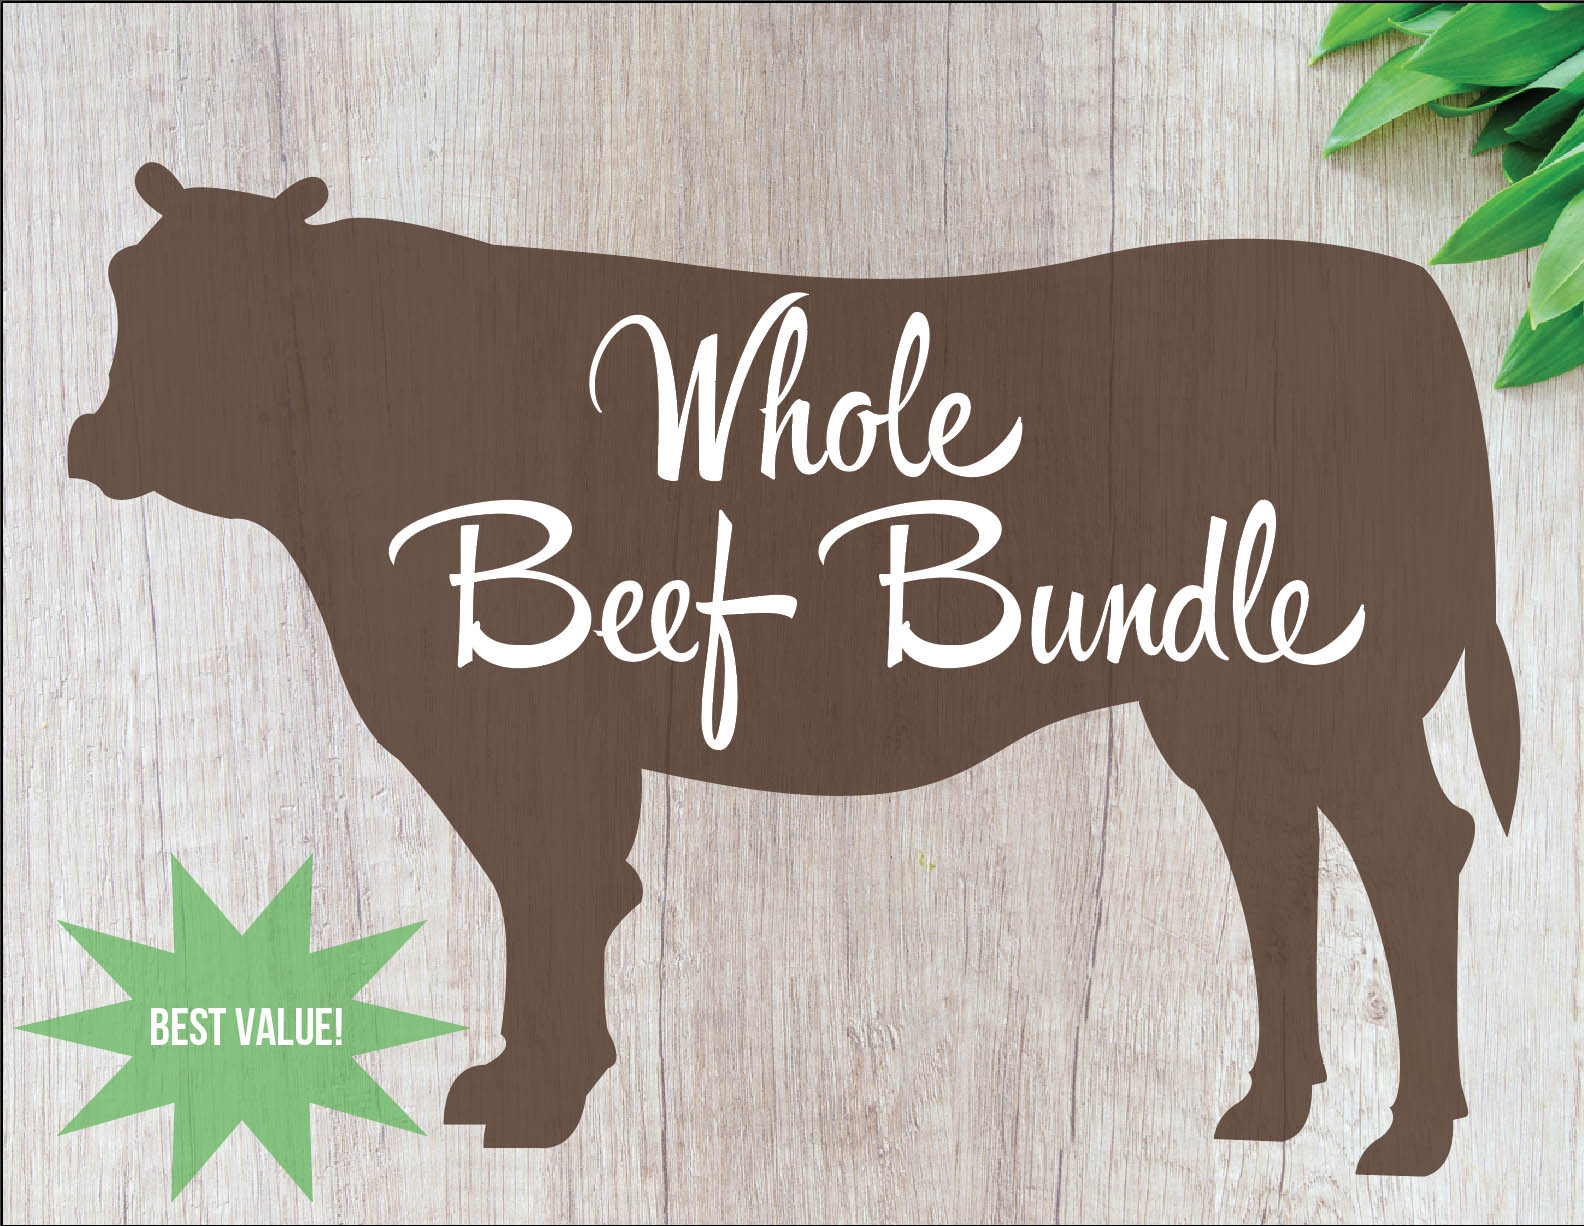 Beef, Deposit, Whole, March 28